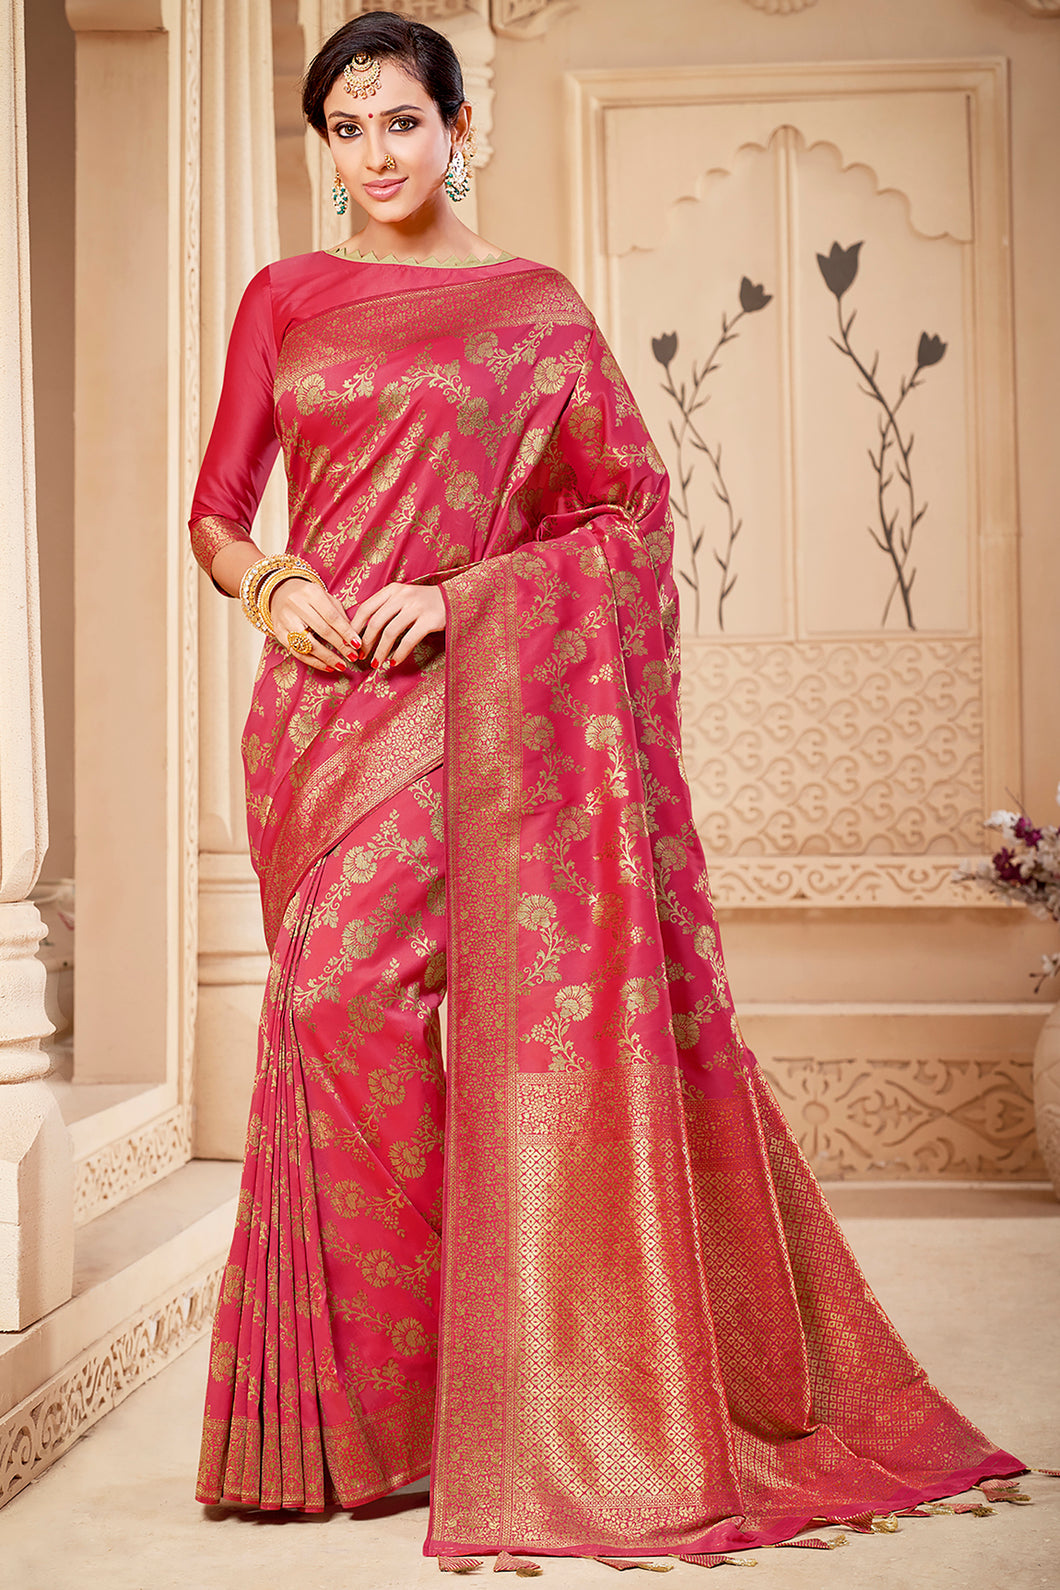 Bhelpuri Peach & Golden Banarasi Silk Woven Traditional Saree with Blouse Piece